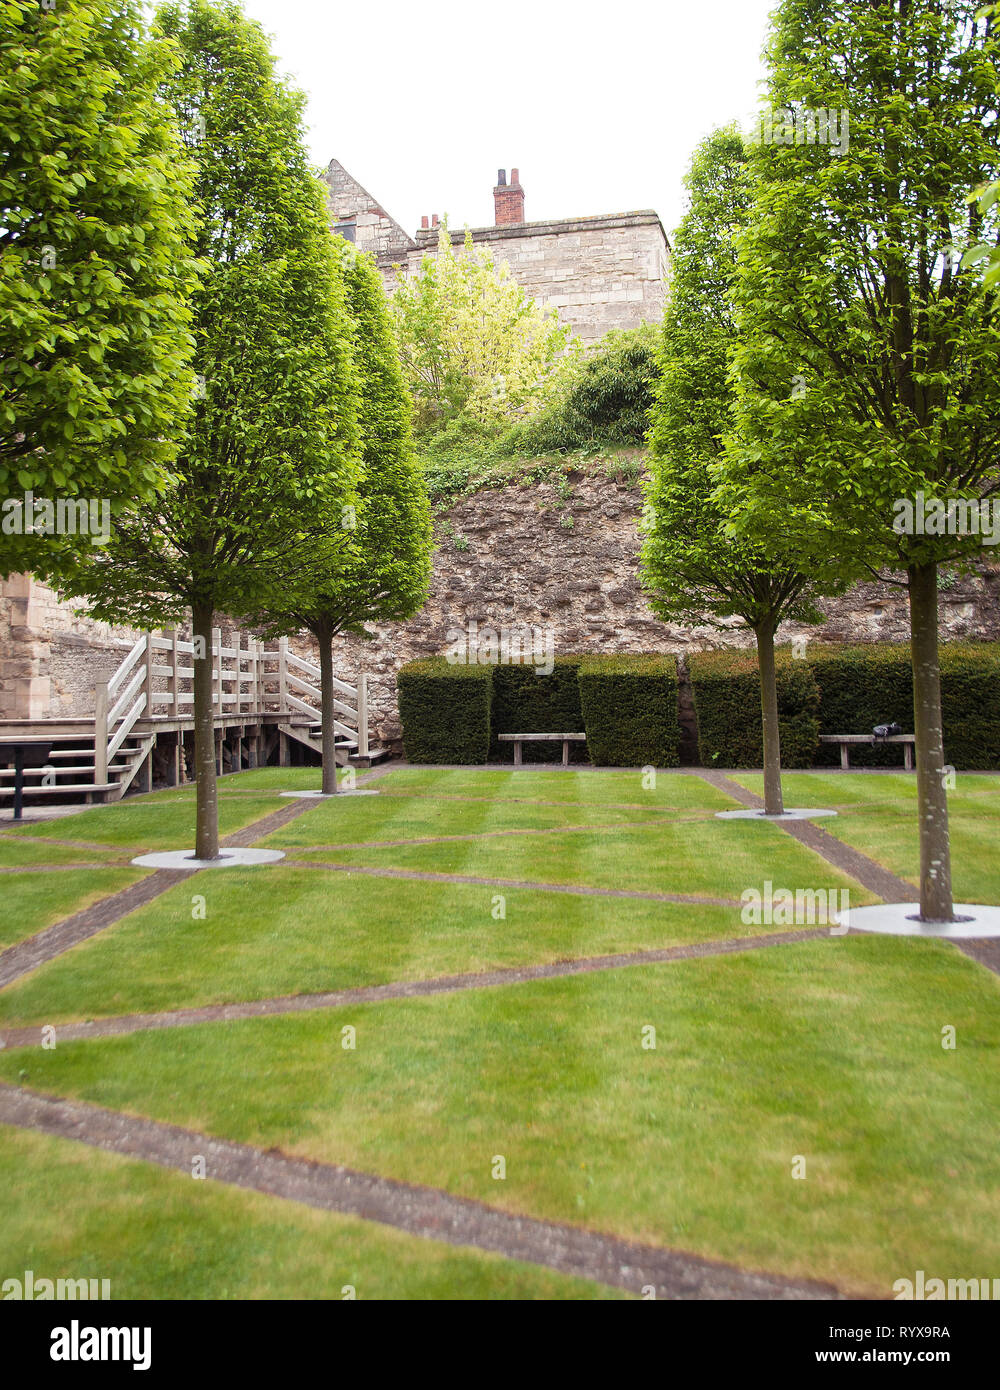 Medieval Bishop's_Palace Contemporary Garden owned by English Heritage is in a histroric setting overlooking Lincoln City with fastigiate hornbeams - Stock Image